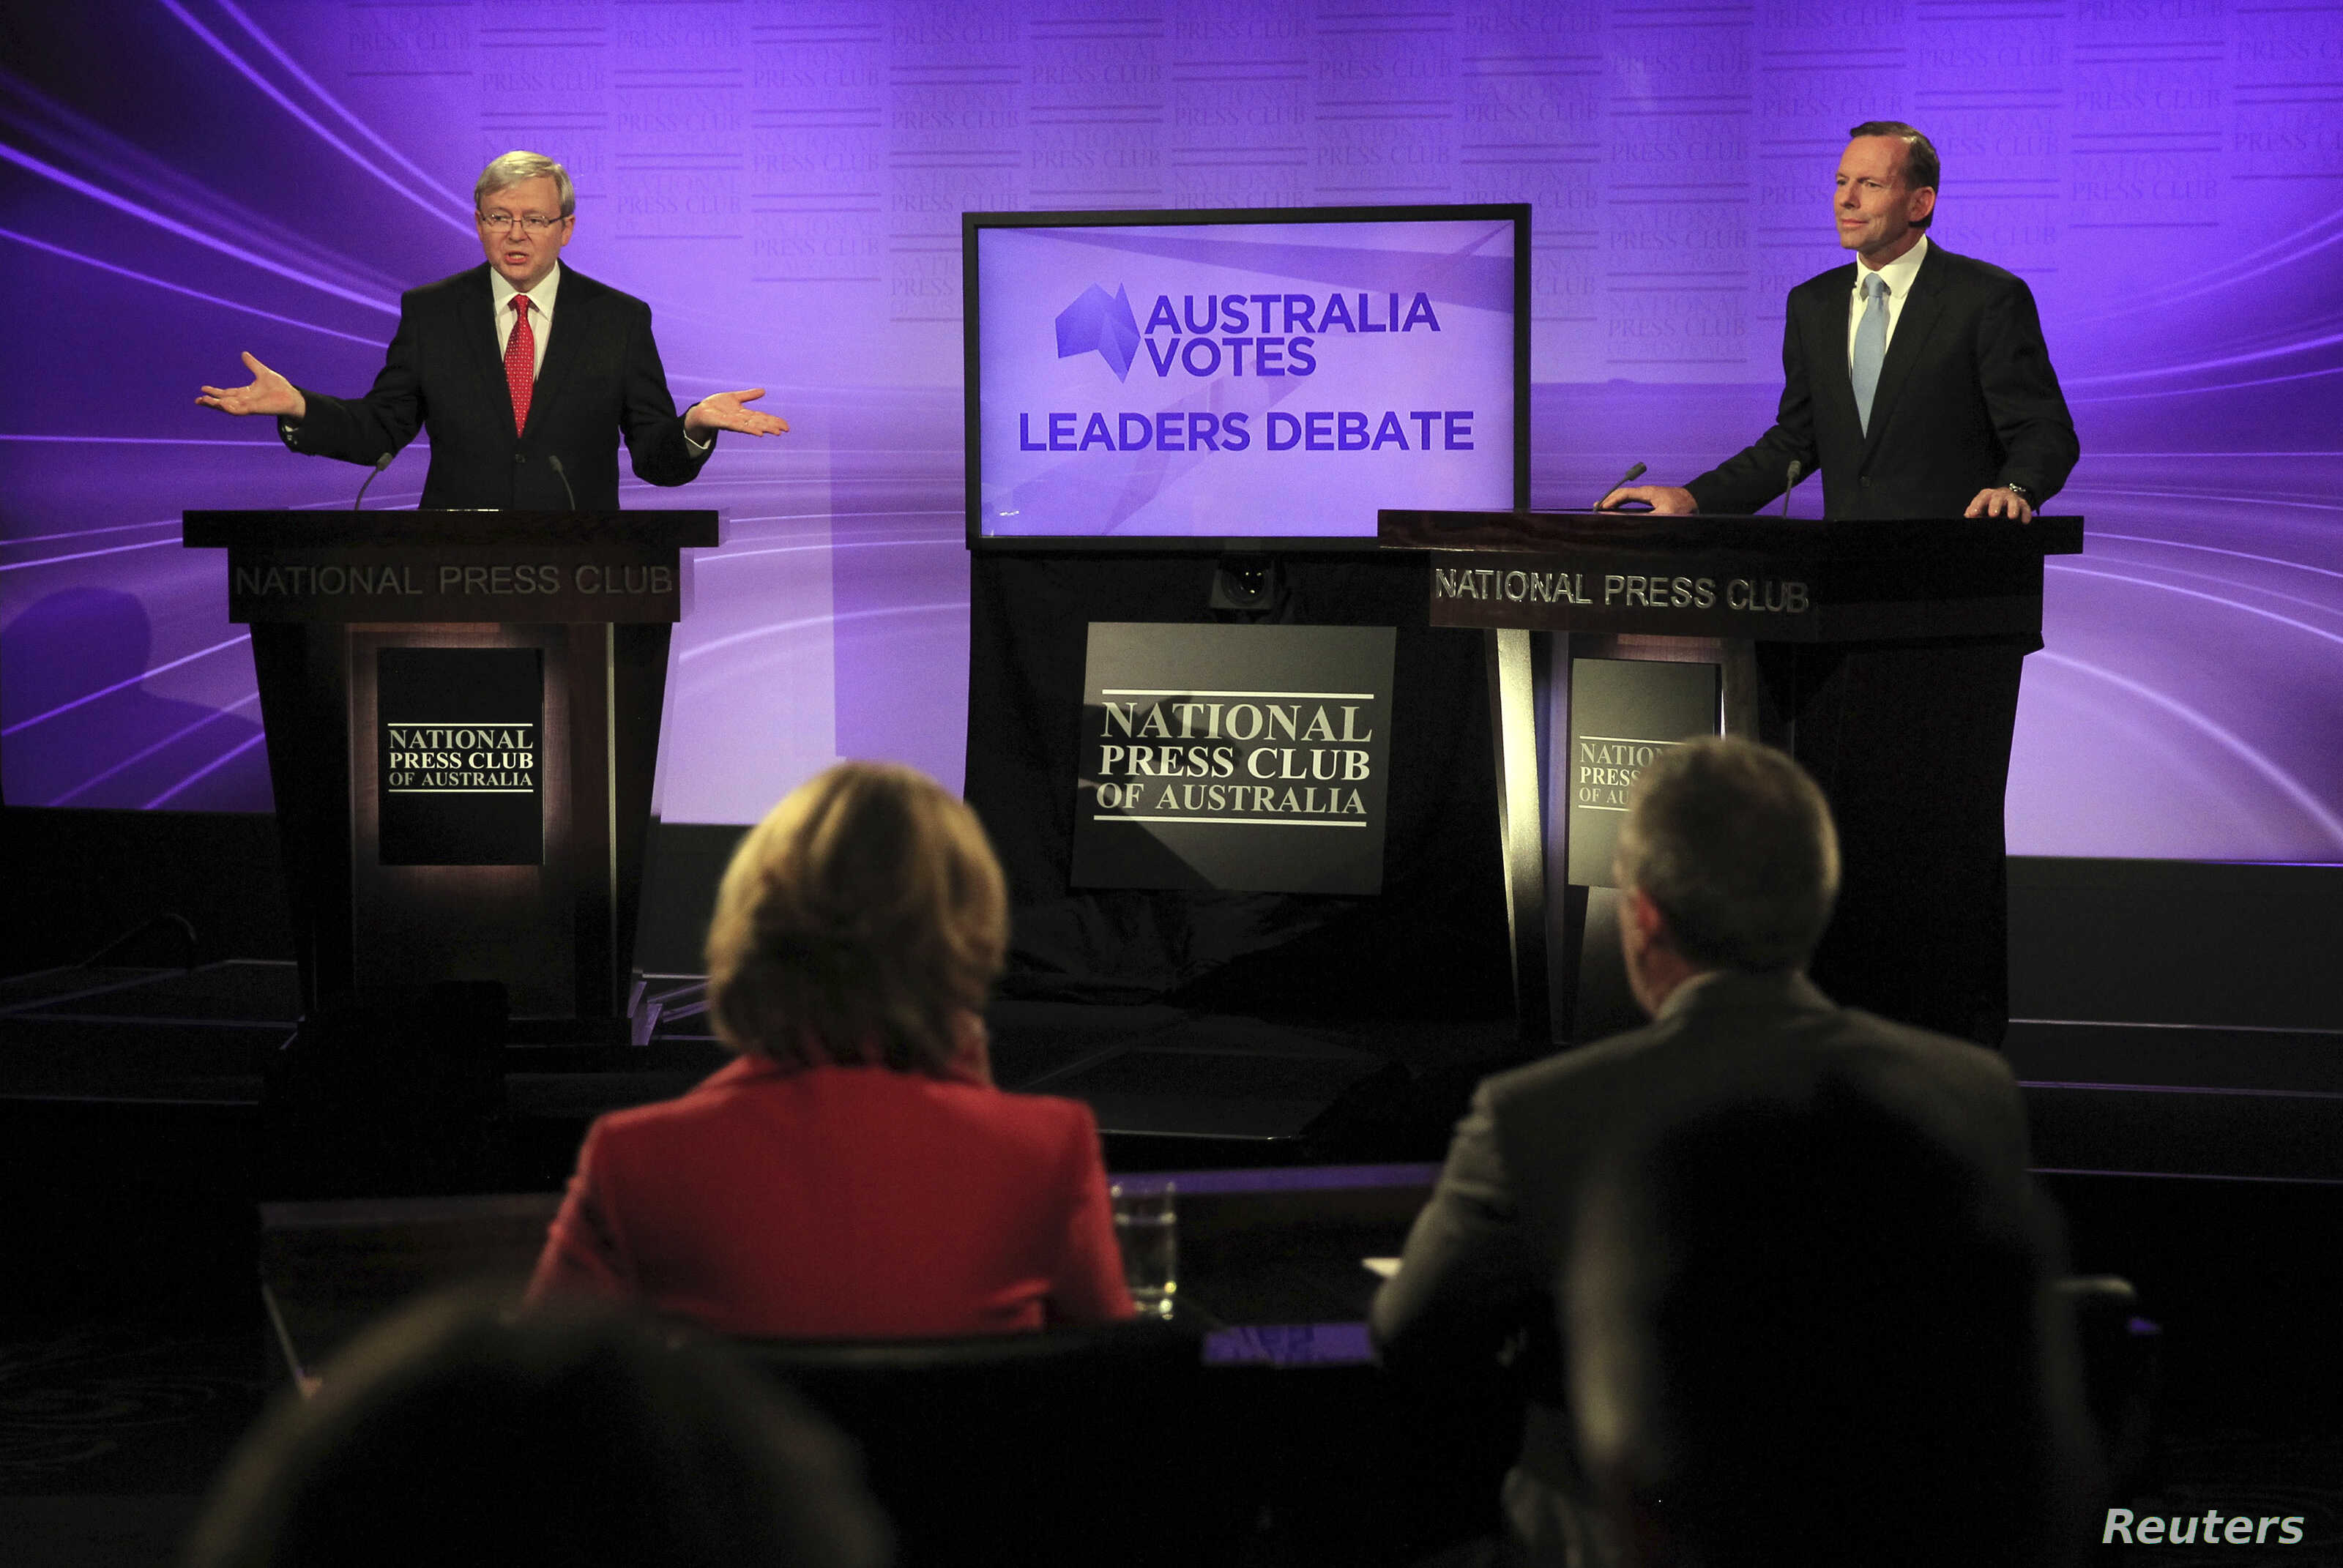 Australian Prime Minister and leader of the Australian Labor Party Kevin Rudd (L) speaks as the leader of the conservative opposition Tony Abbott listens on during their debate at the National Press Club in Canberra, August 11, 2013.